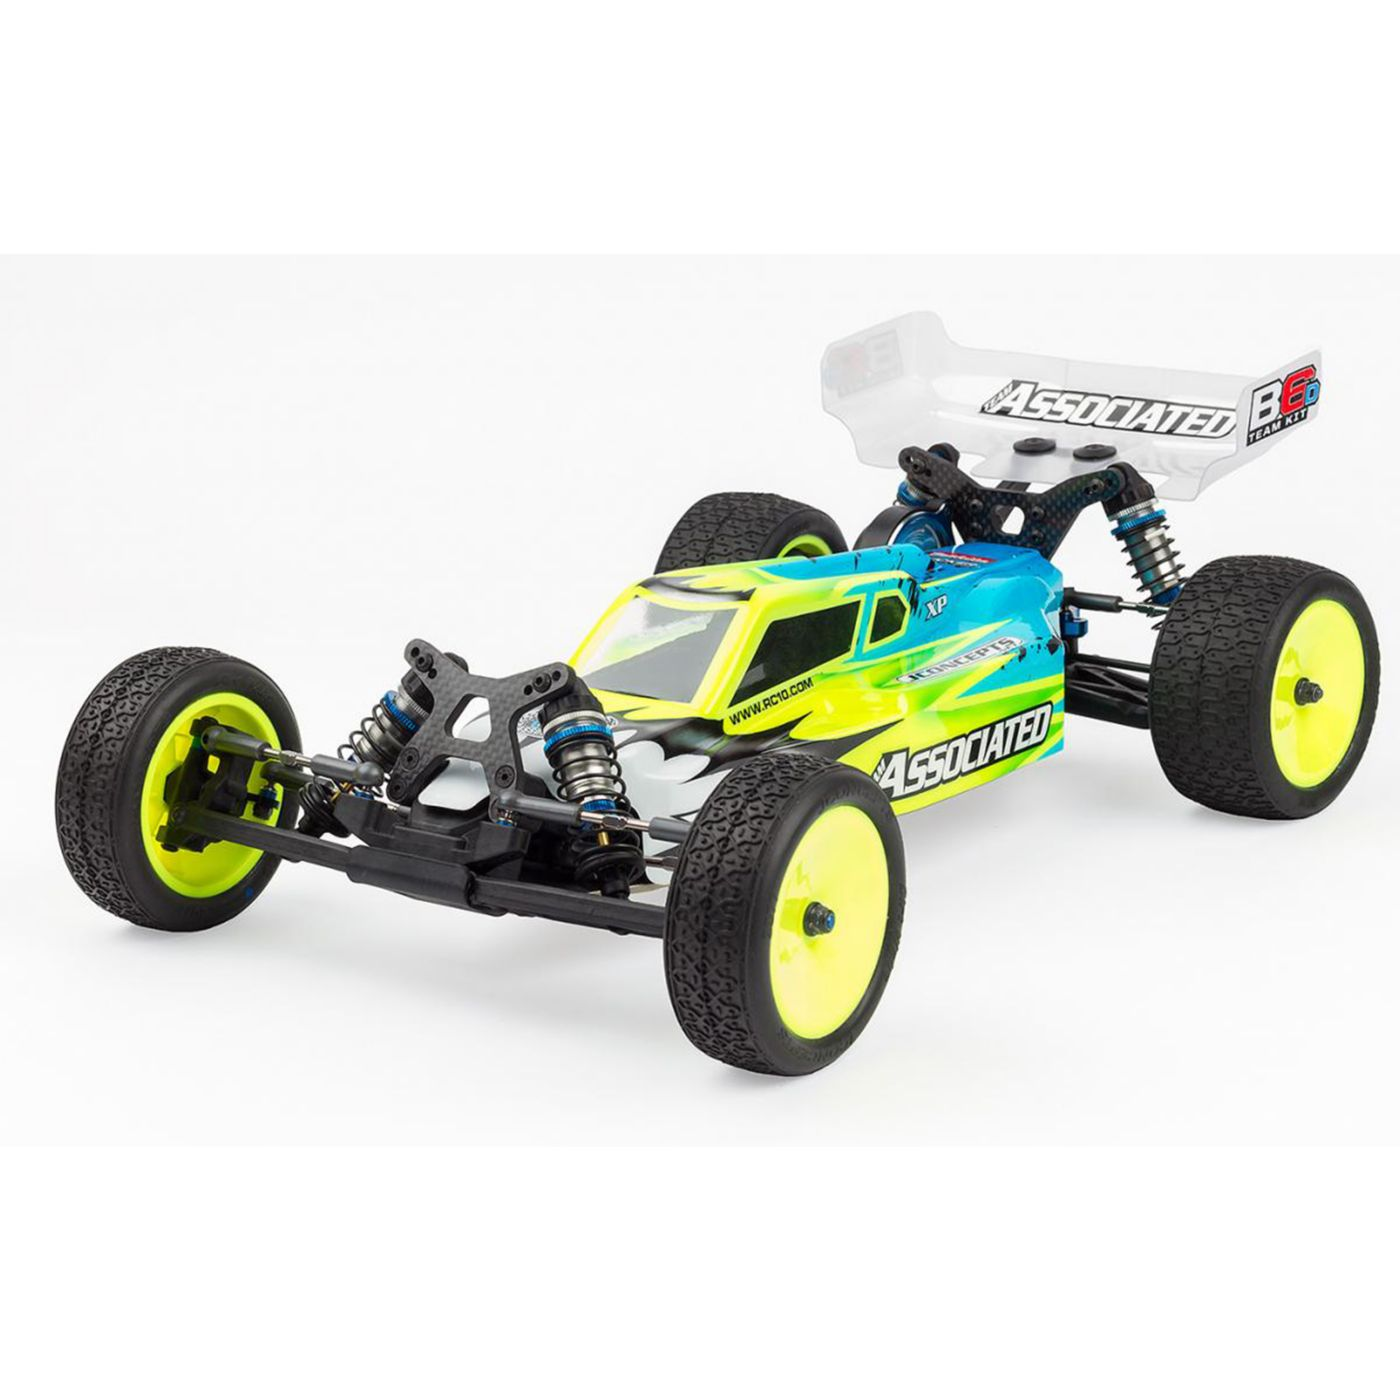 Enter to Win a Loaded Team Associated B6D Team Kit from Horizon Hobby